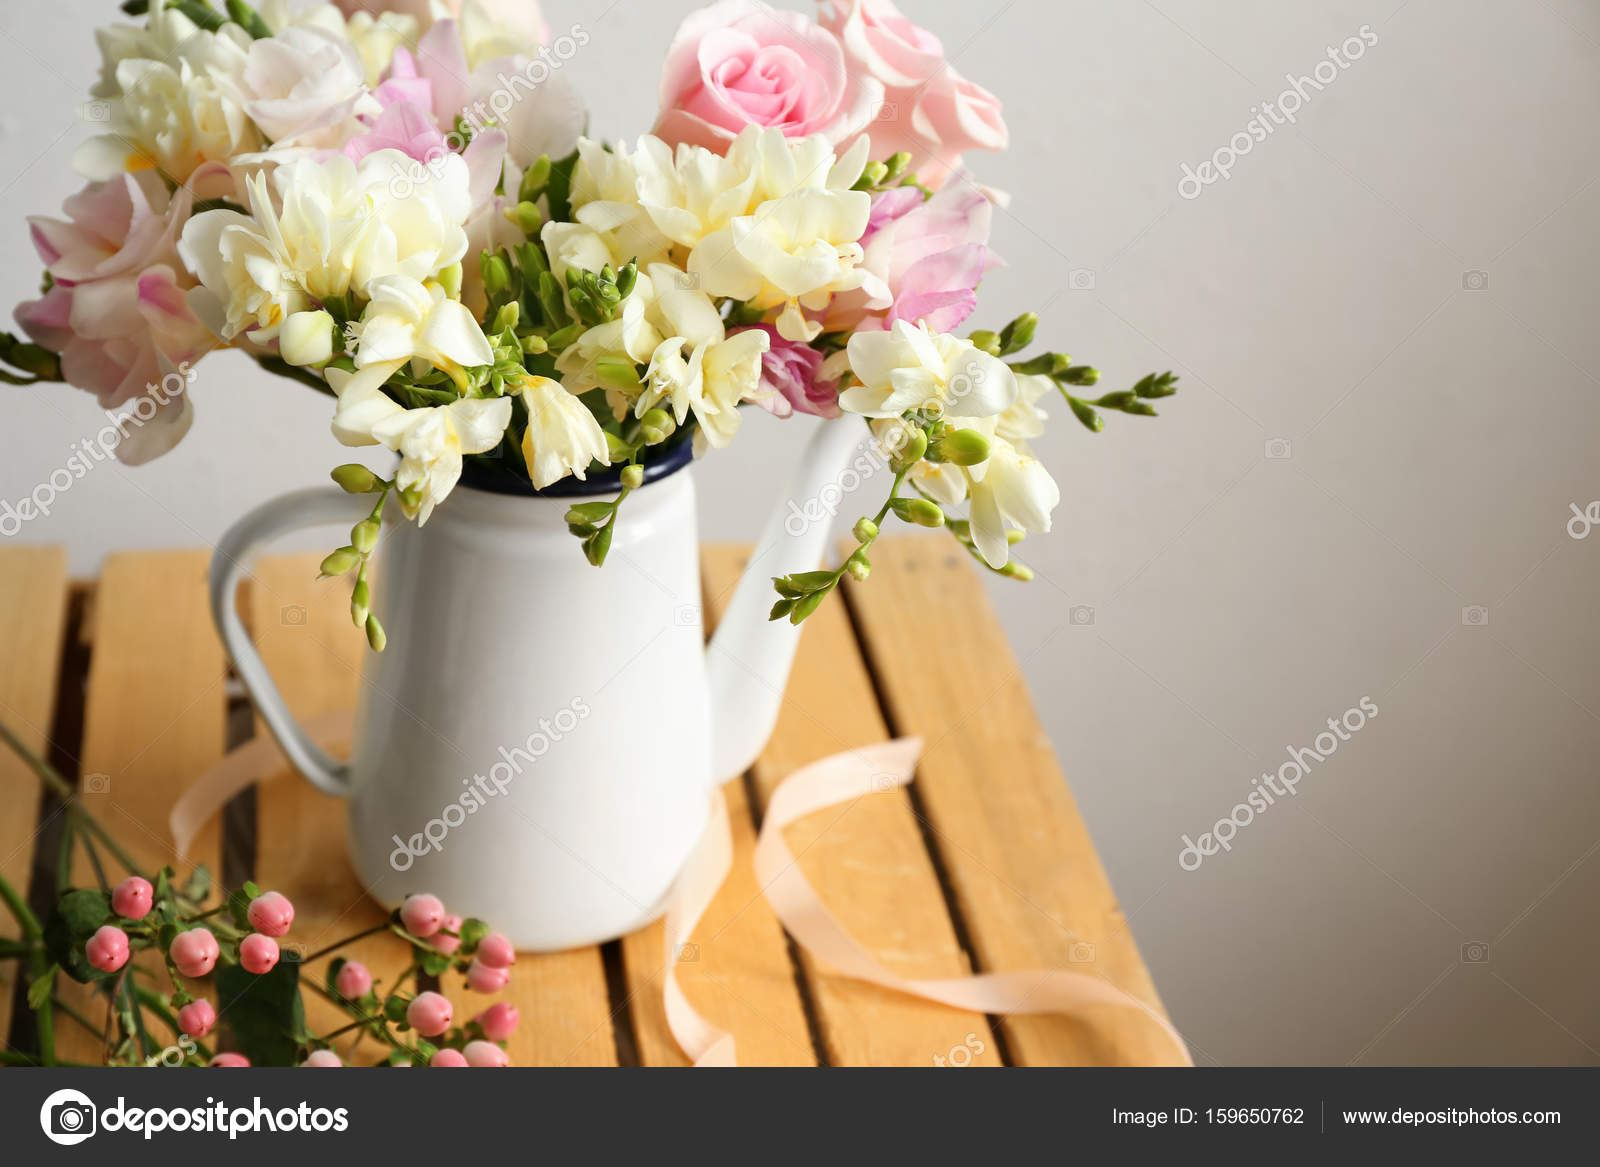 Bouquet with freesia flowers stock photo belchonock 159650762 beautiful bouquet with freesia flowers in jug on wooden table photo by belchonock izmirmasajfo